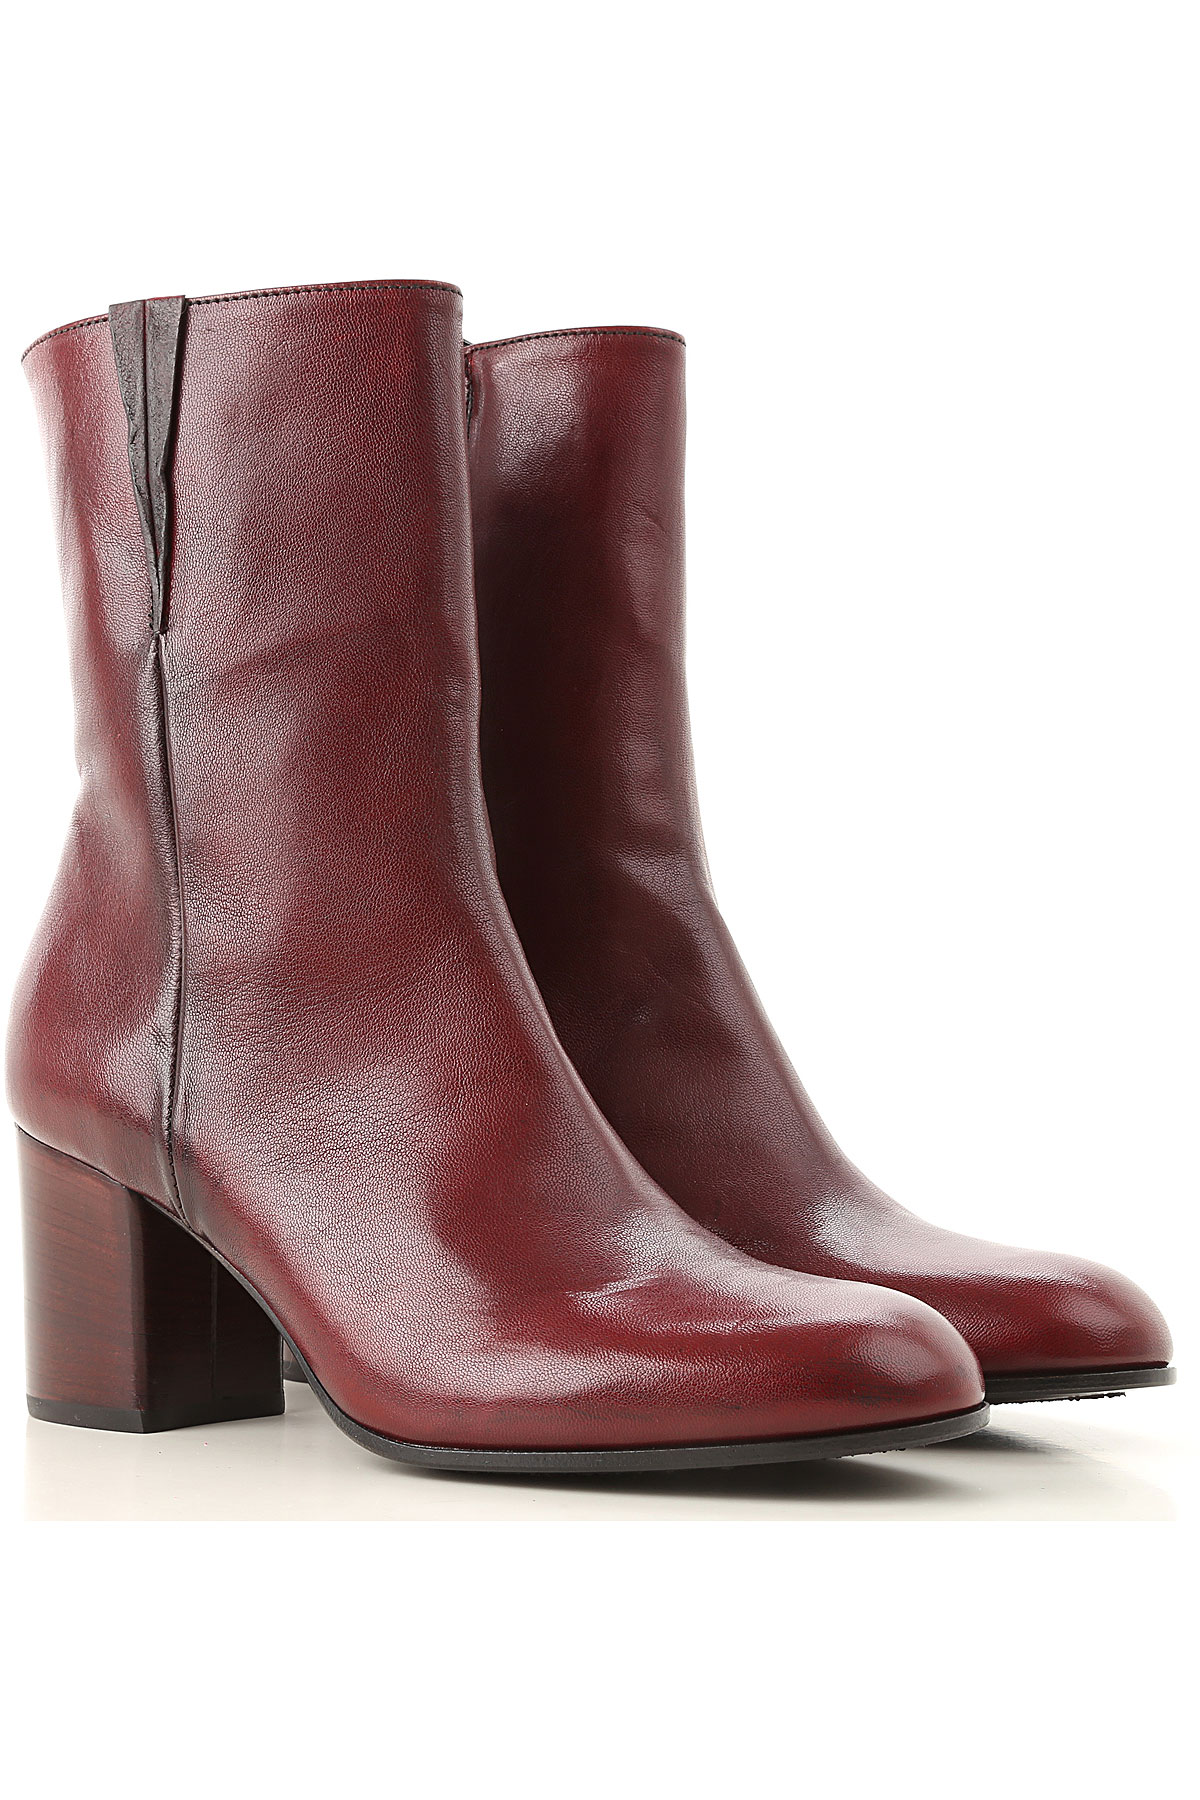 Image of Pantanetti Boots for Women, Booties, Bordeaux, Leather, 2017, 6 7 8 9